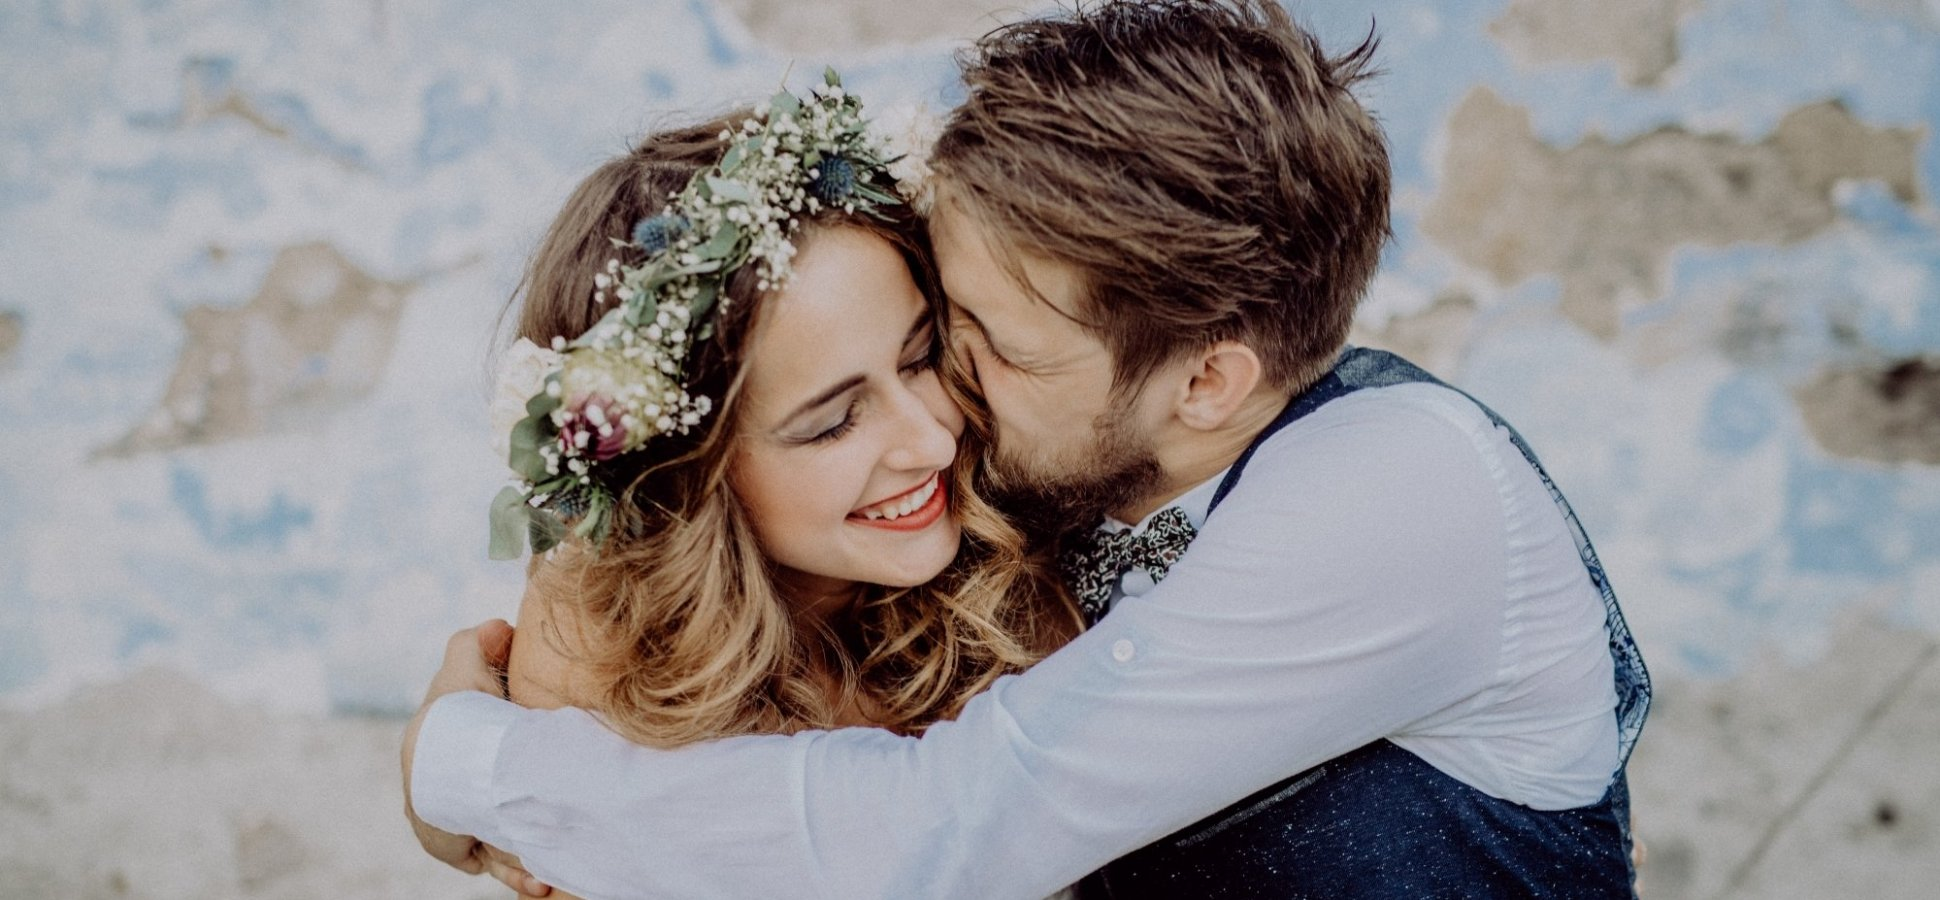 Fewer People Are Getting Married. The Reason Why Is Stunning, According to Science